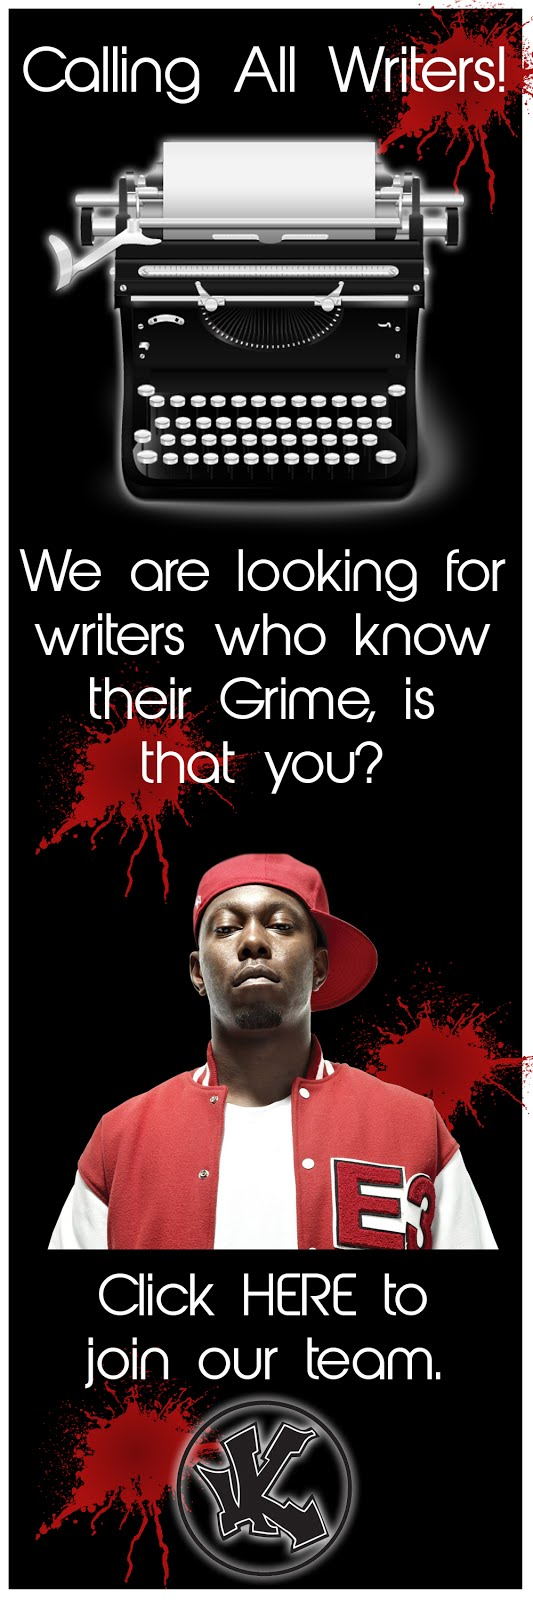 Do you want to write for us?